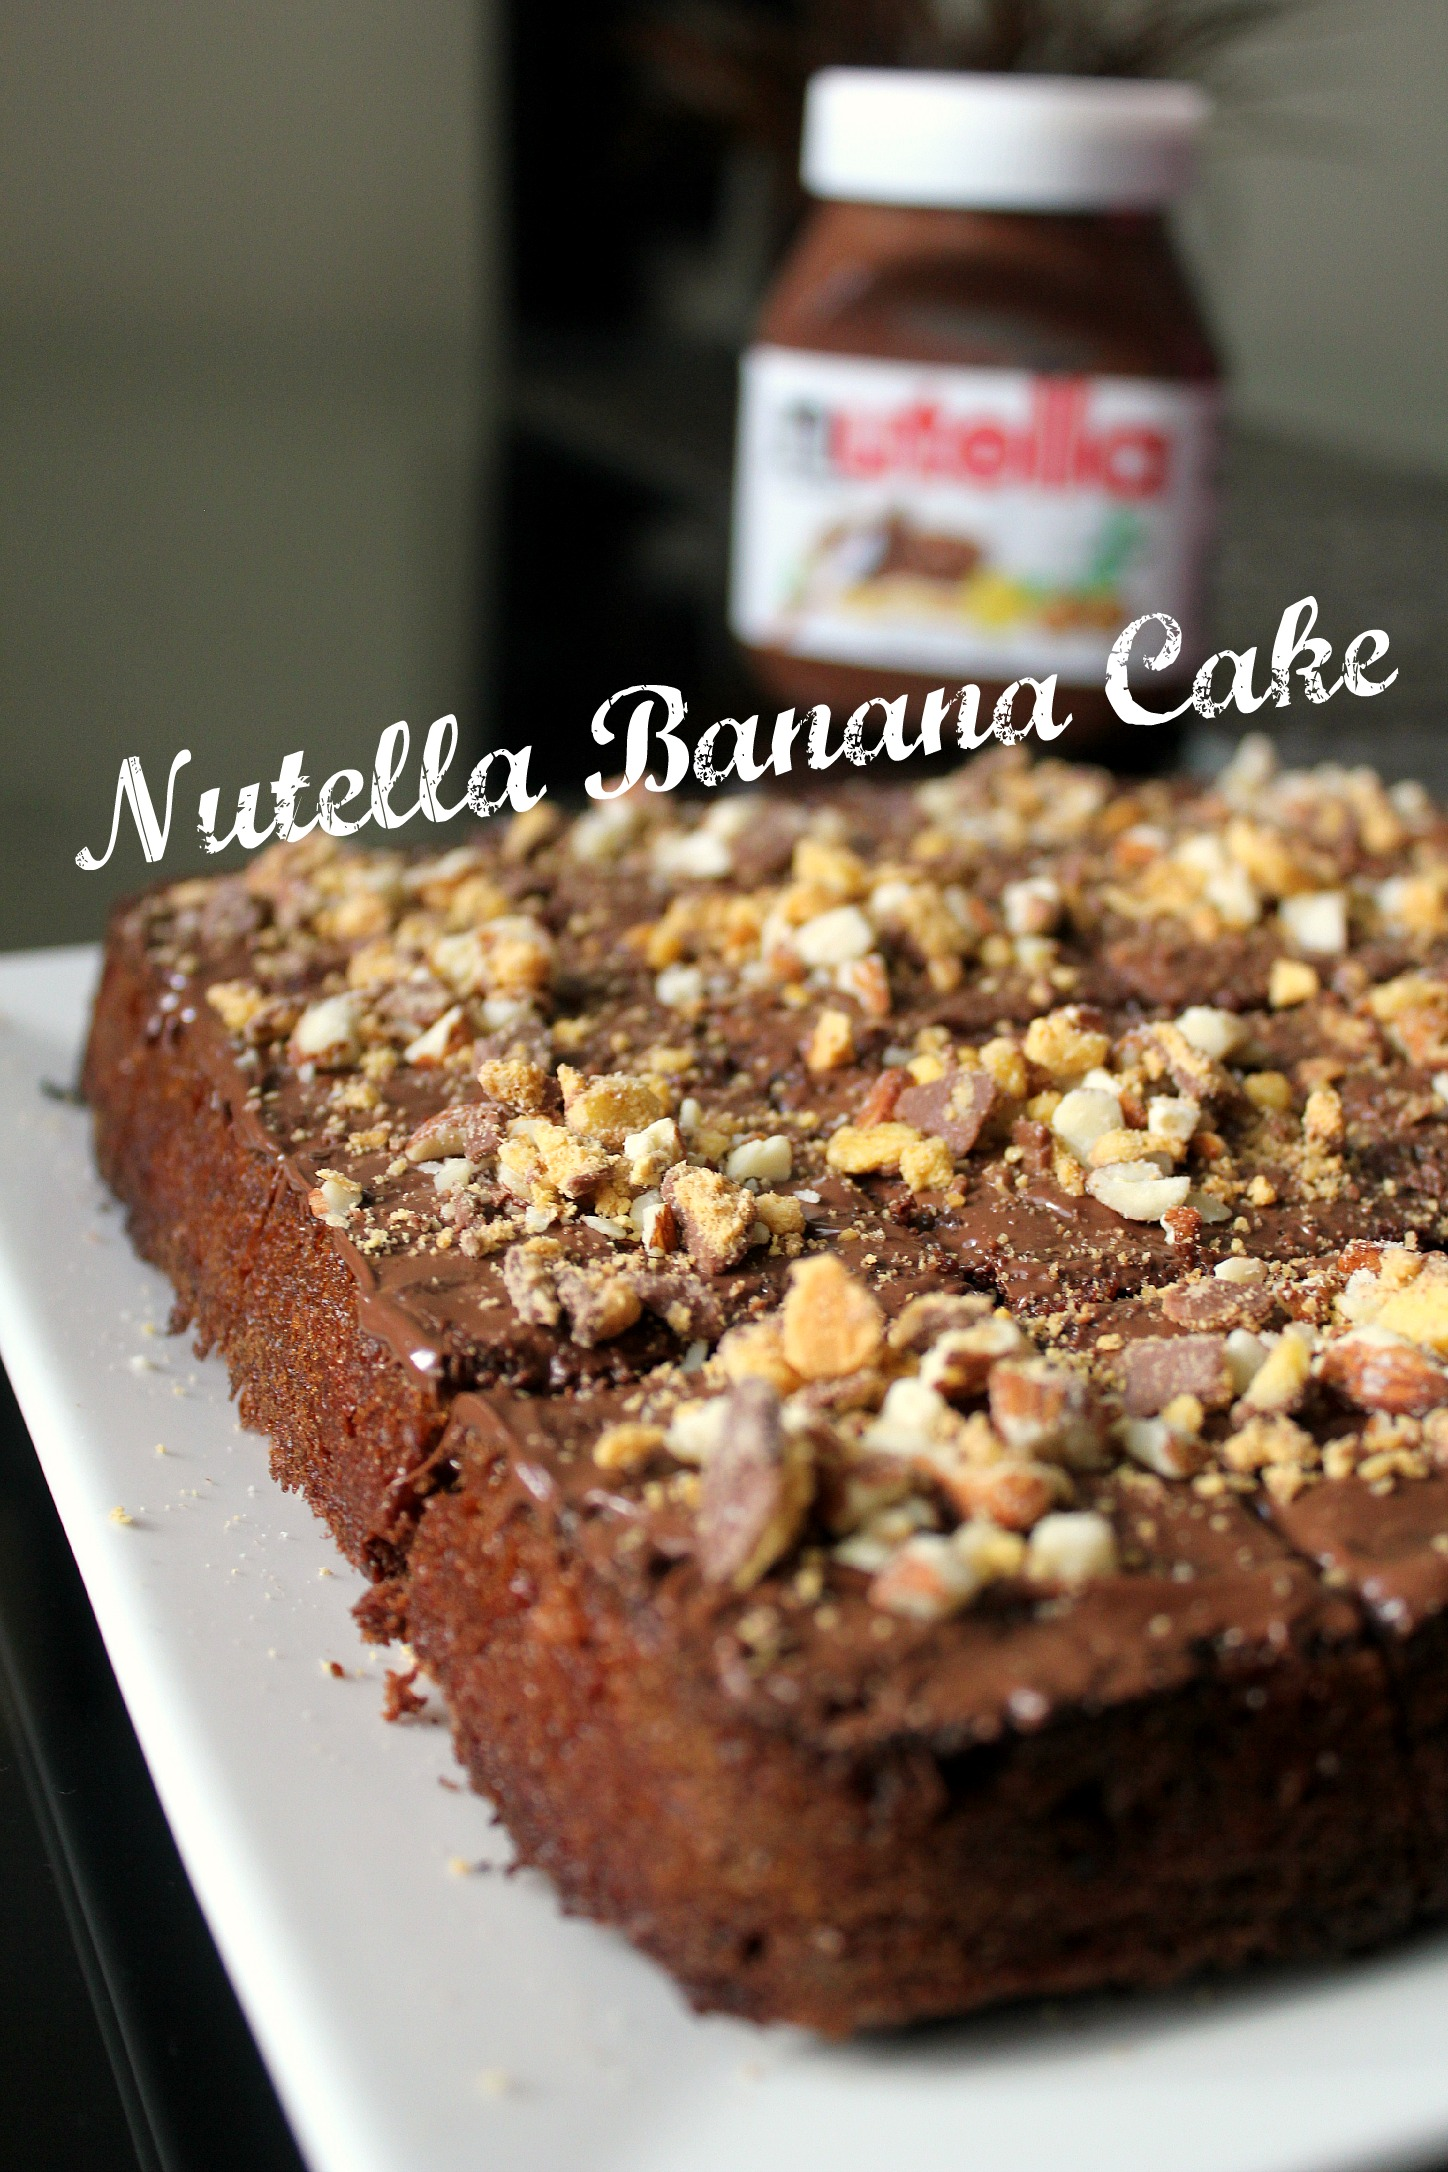 Nutella Banana Cake